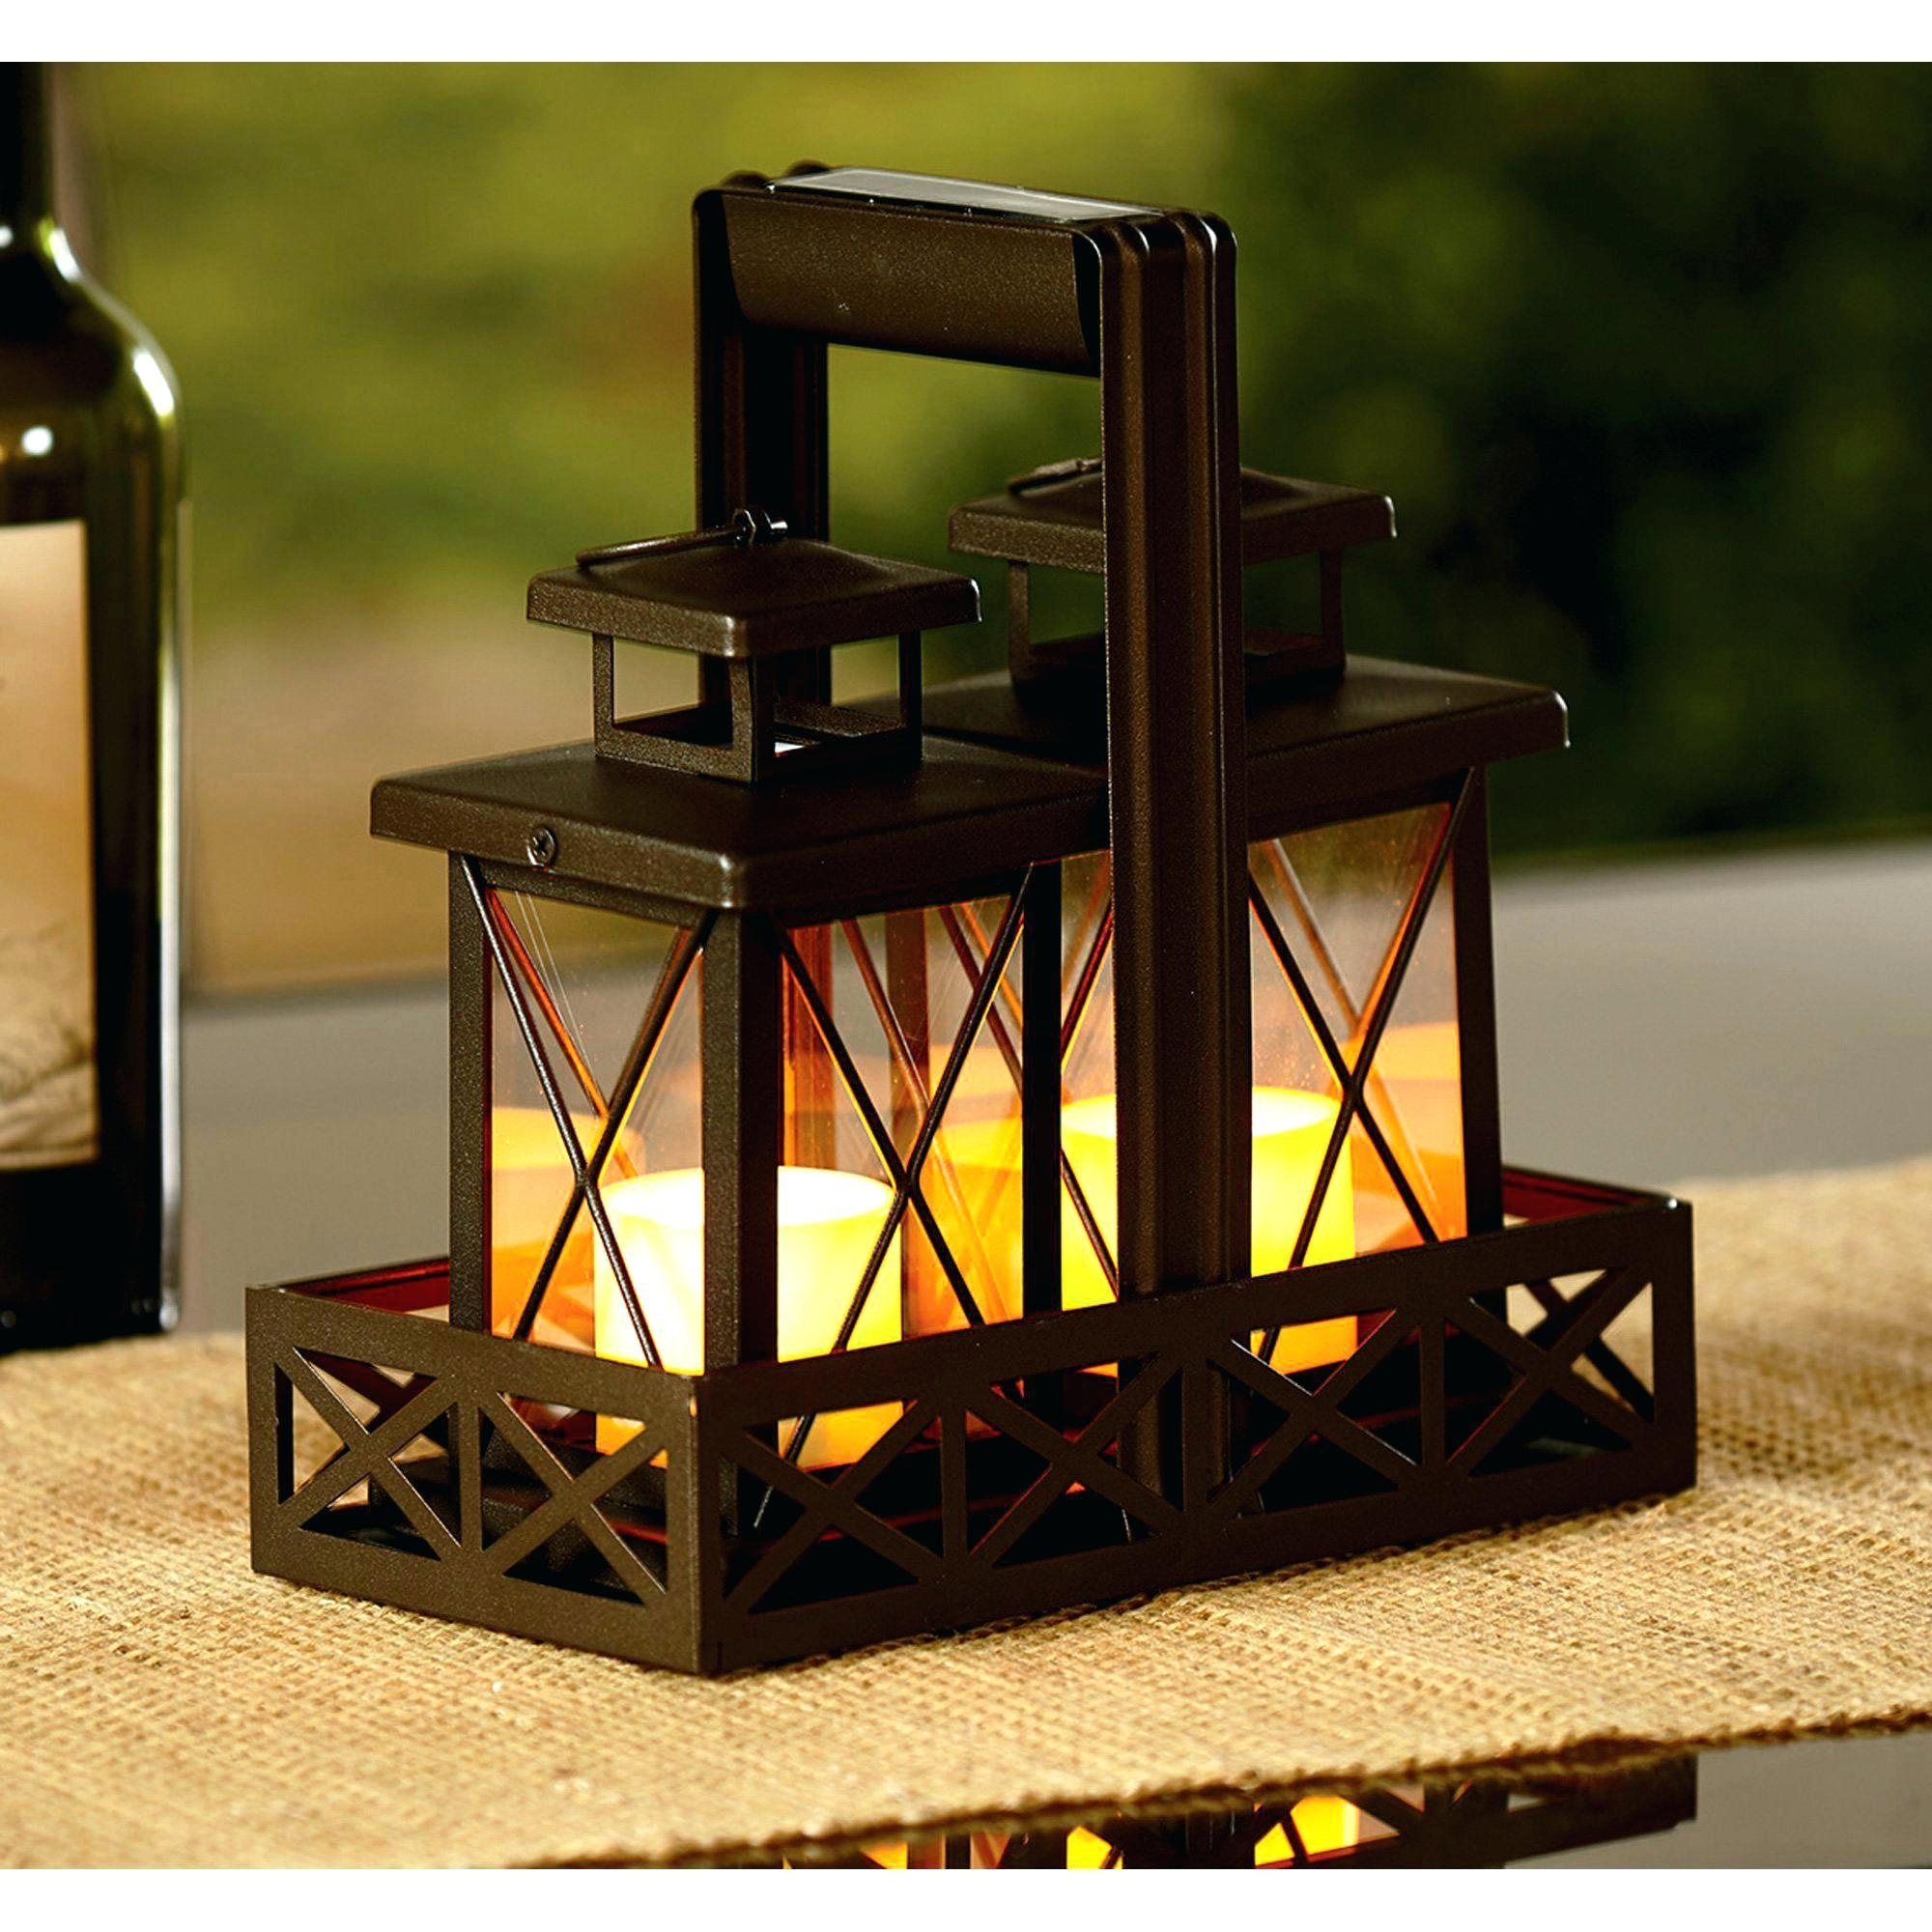 Outdoor Oil Lamps For Patio Table Sale – Pocketworldcupschedule regarding Outdoor Oil Lanterns for Patio (Image 10 of 20)